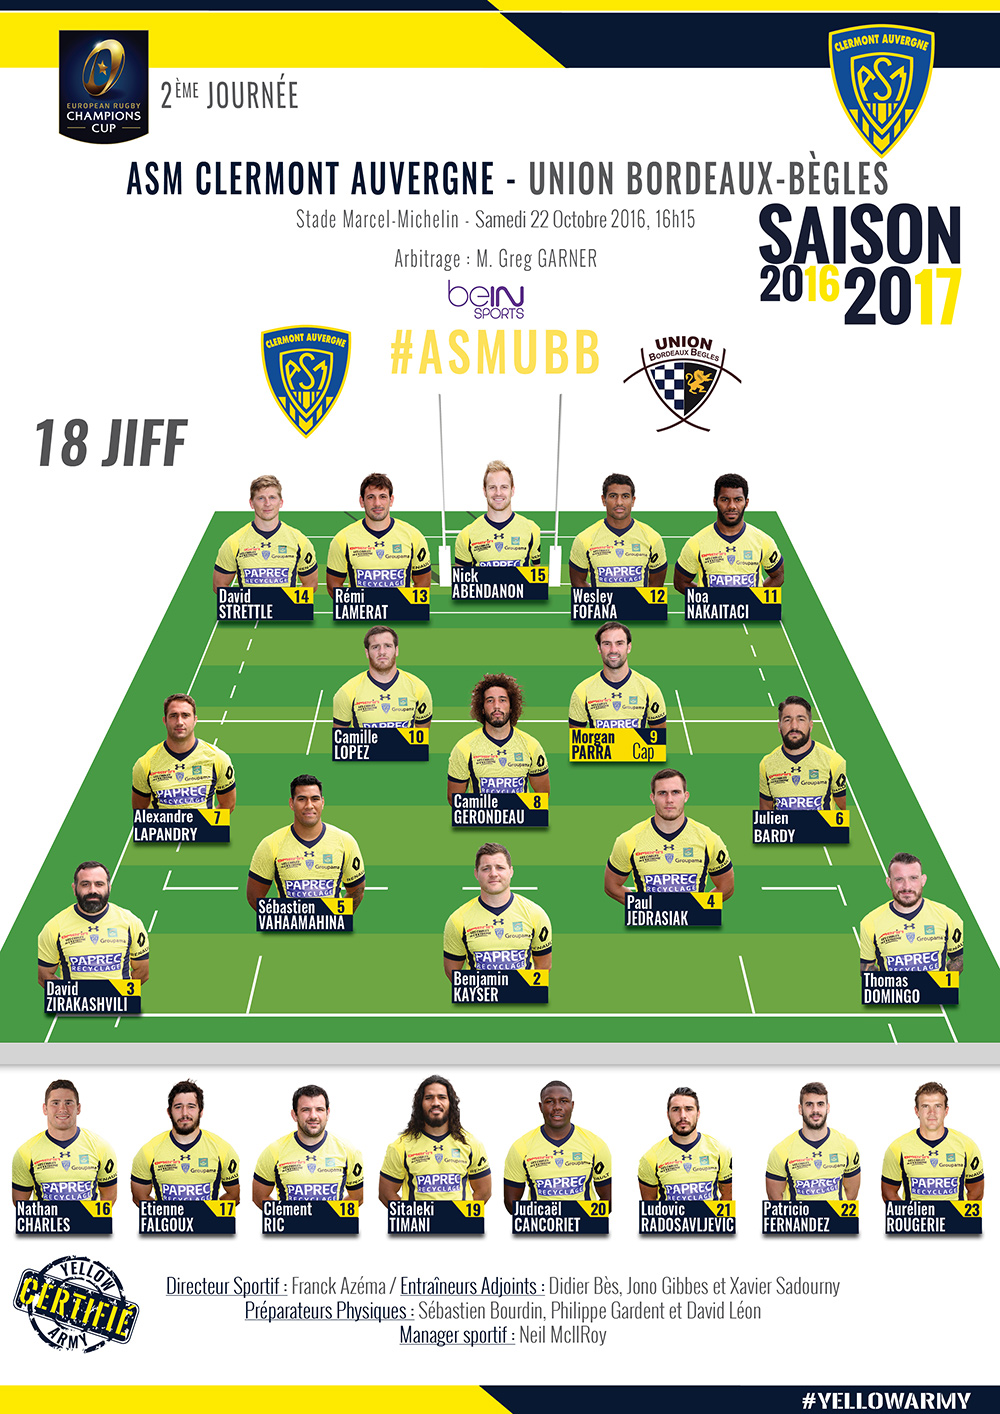 http://www.asm-rugby.com/sites/default/files/thumbnails/image/161021-compo-2.jpg